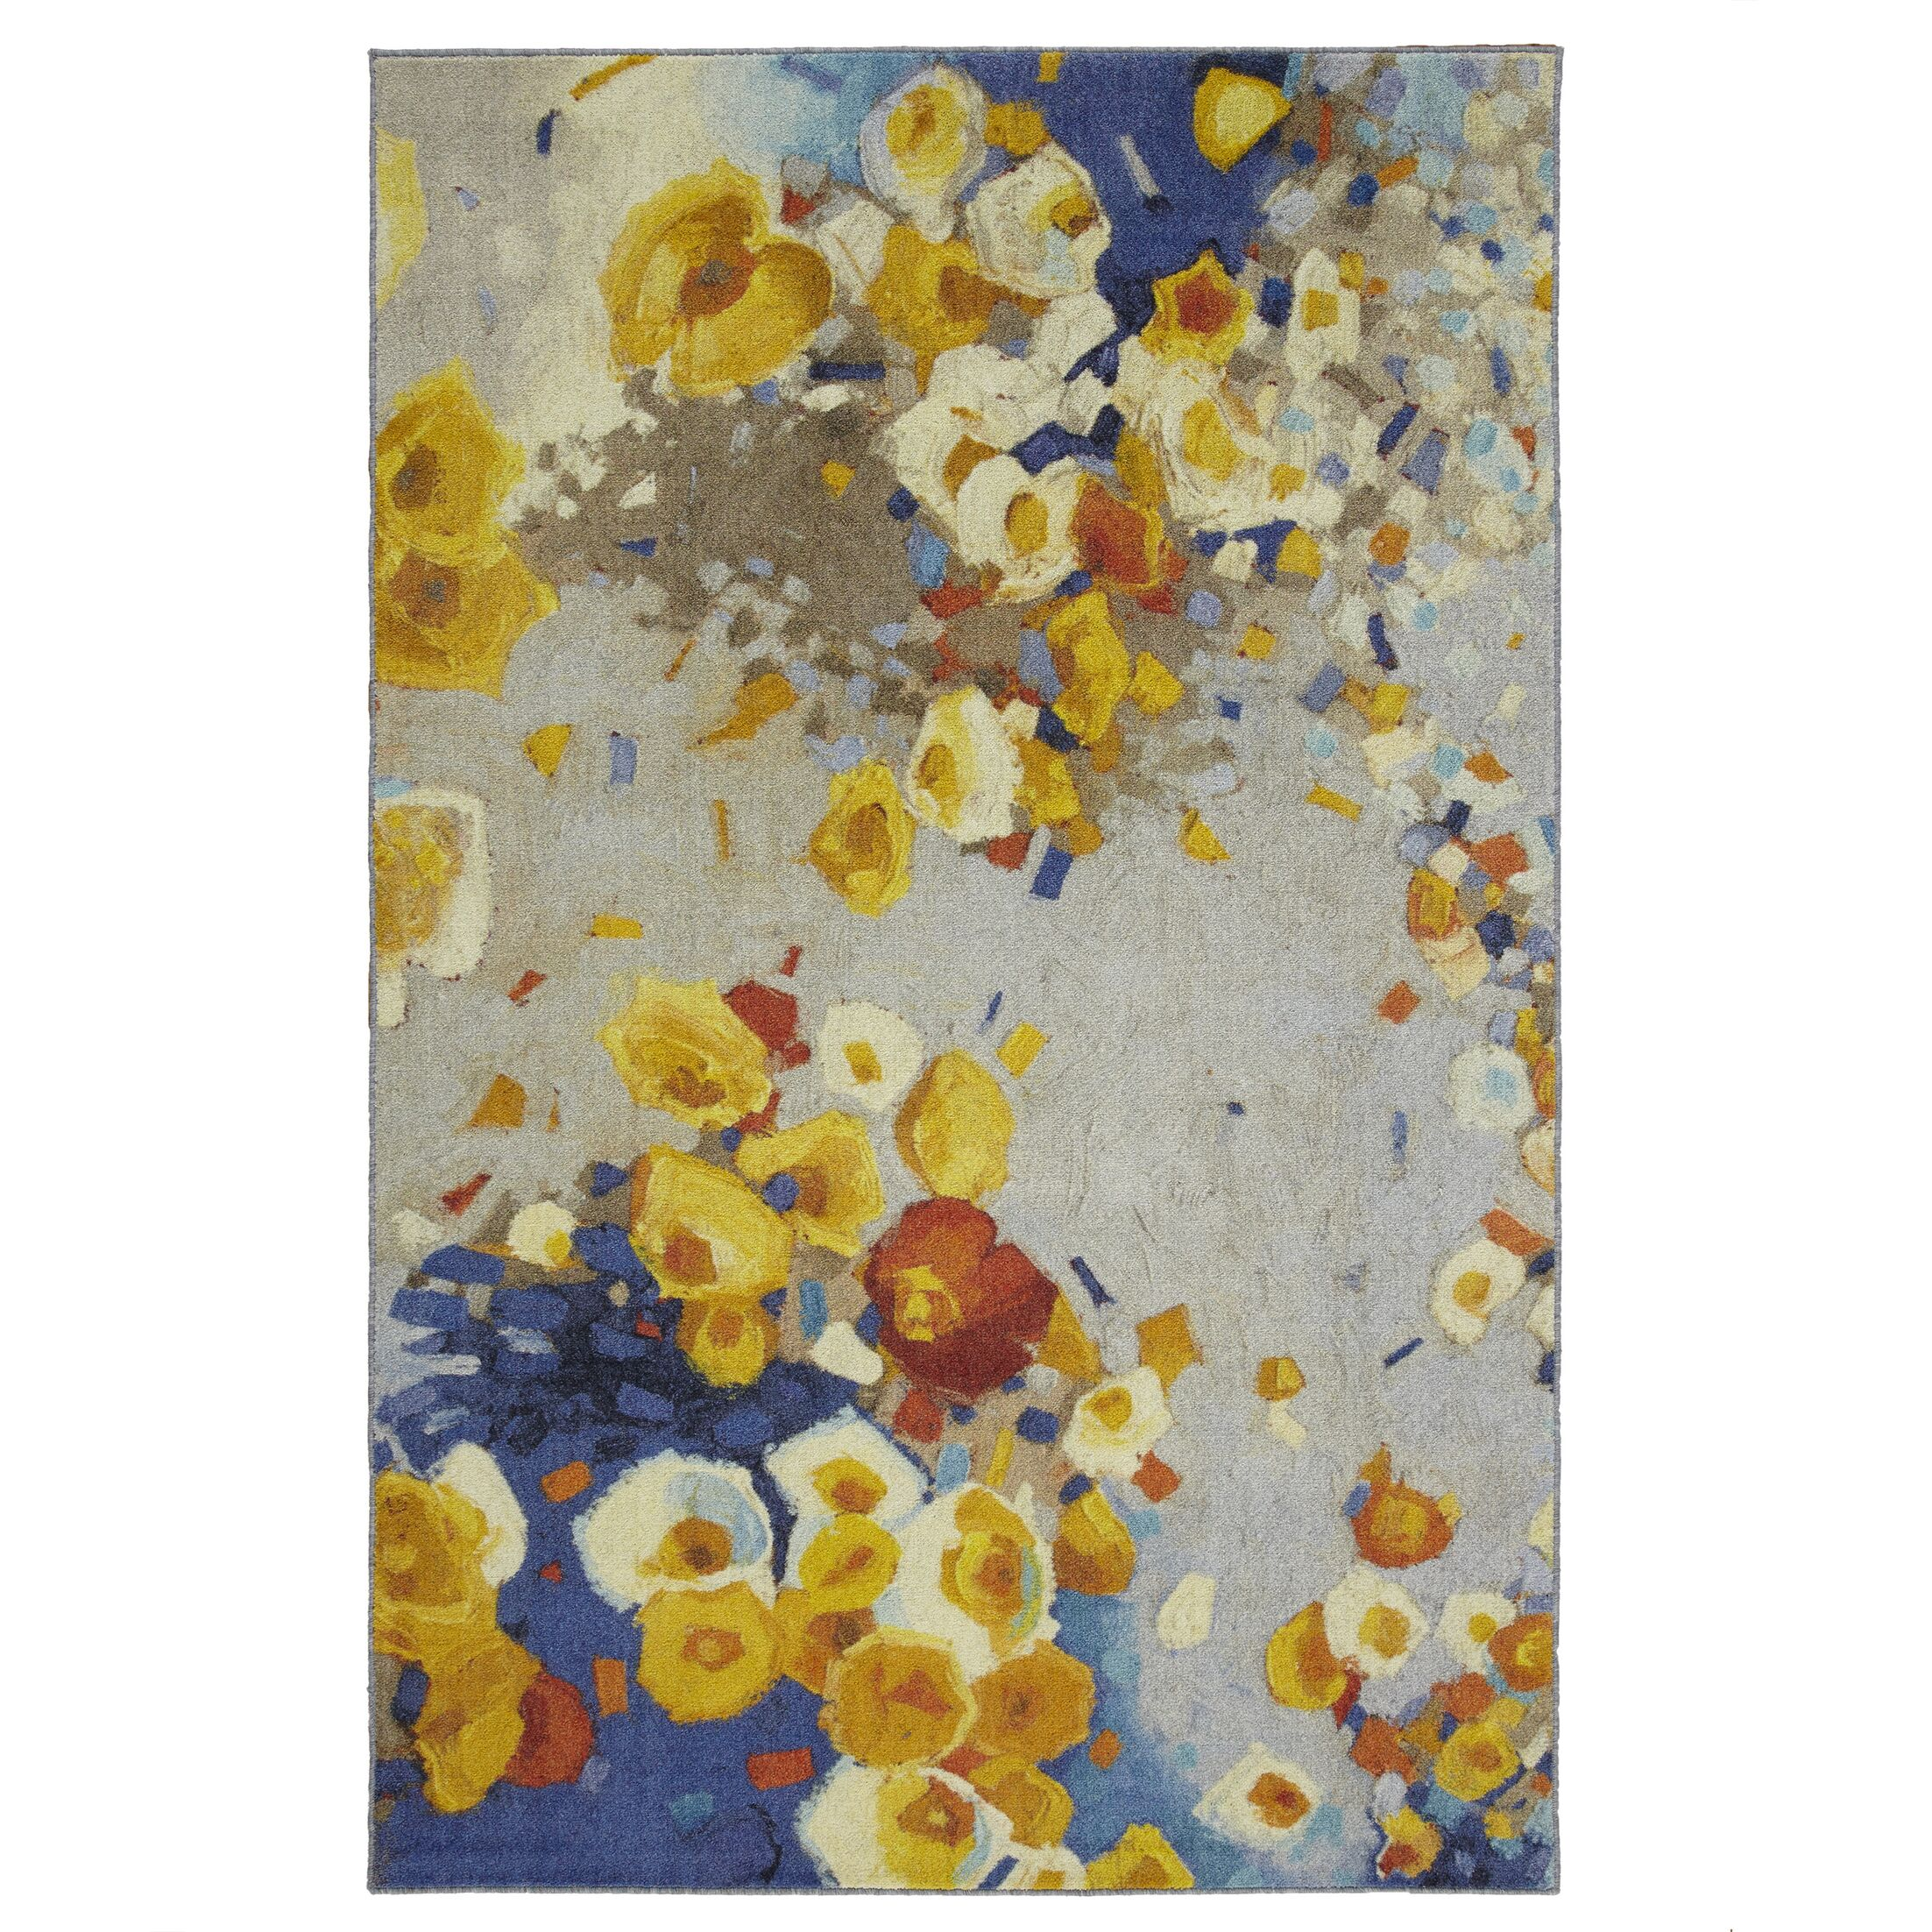 Locher Floral Winds Yellow/Blue Area Rug Rug Size: Rectangle 5' x 8'